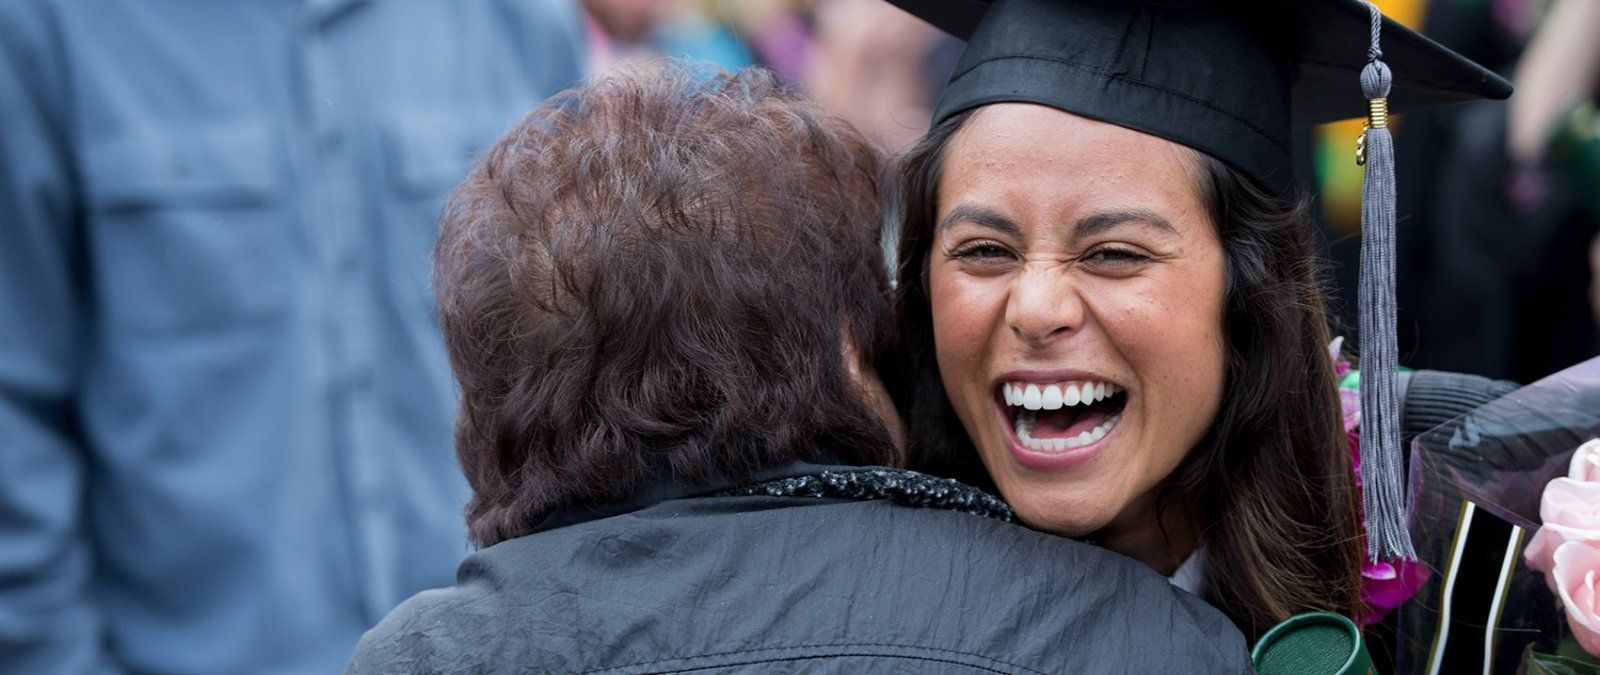 A PLNU graduate student is embraced by a grandparent after commencement.